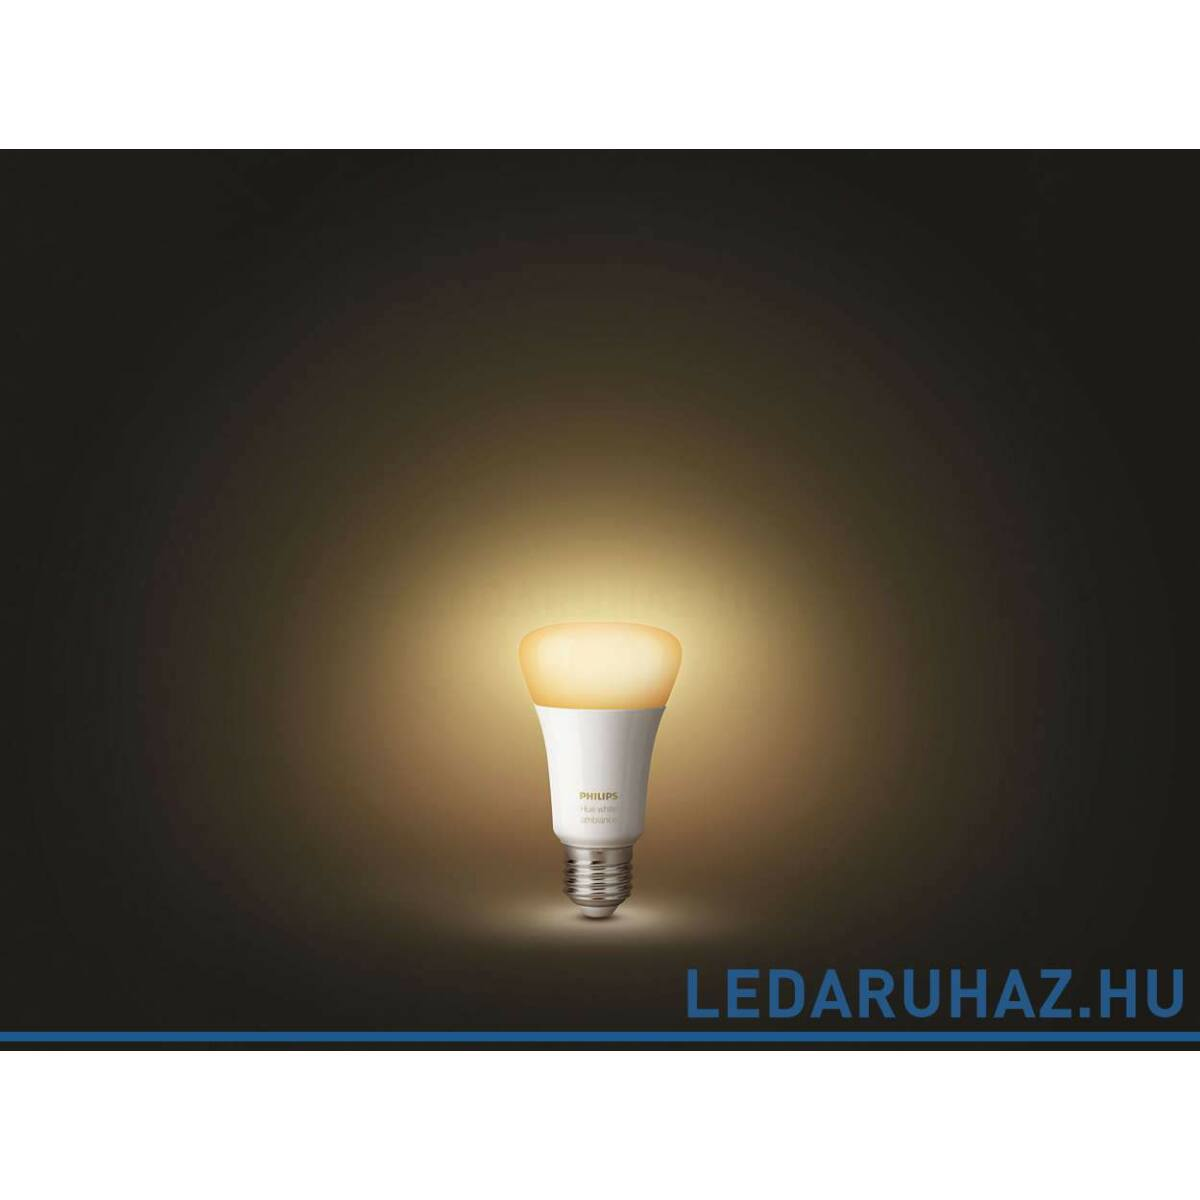 philips hue white ambiance feh r e27 led v ltoztathat sz nh m rs klet 2000k 6500k f nyforr s. Black Bedroom Furniture Sets. Home Design Ideas